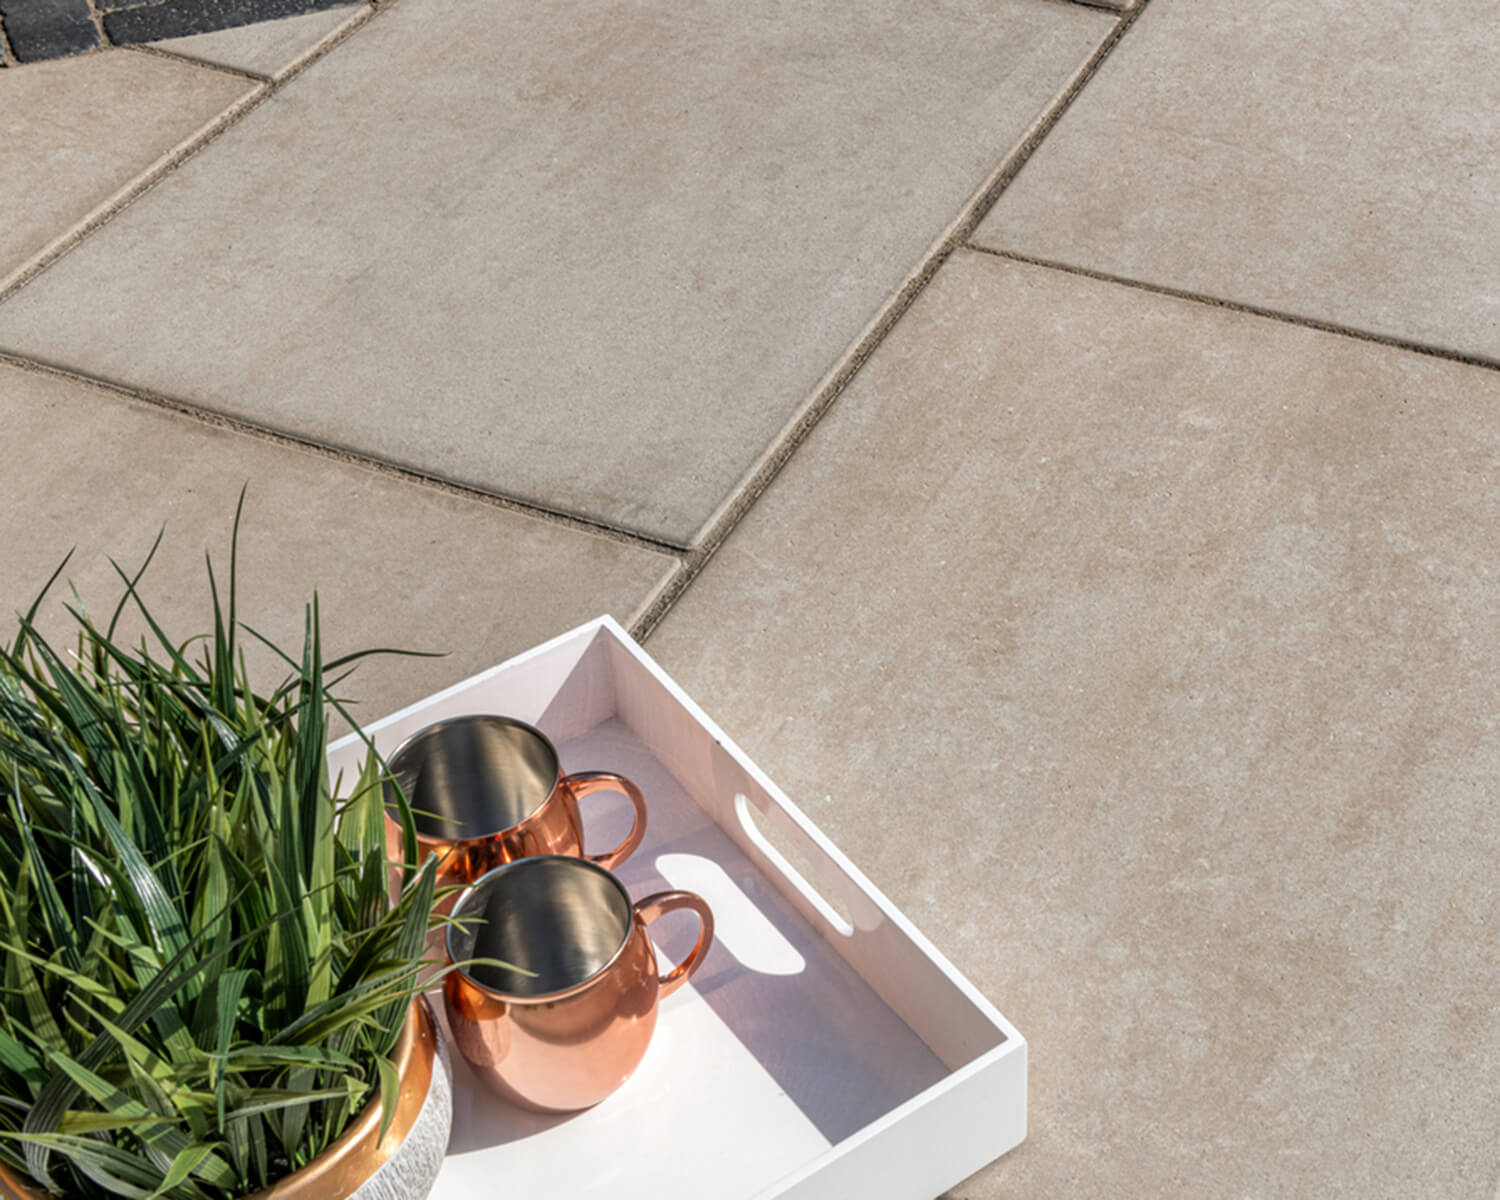 Close-up view of Unilock slab, with tray holding a plant and 2 mugs